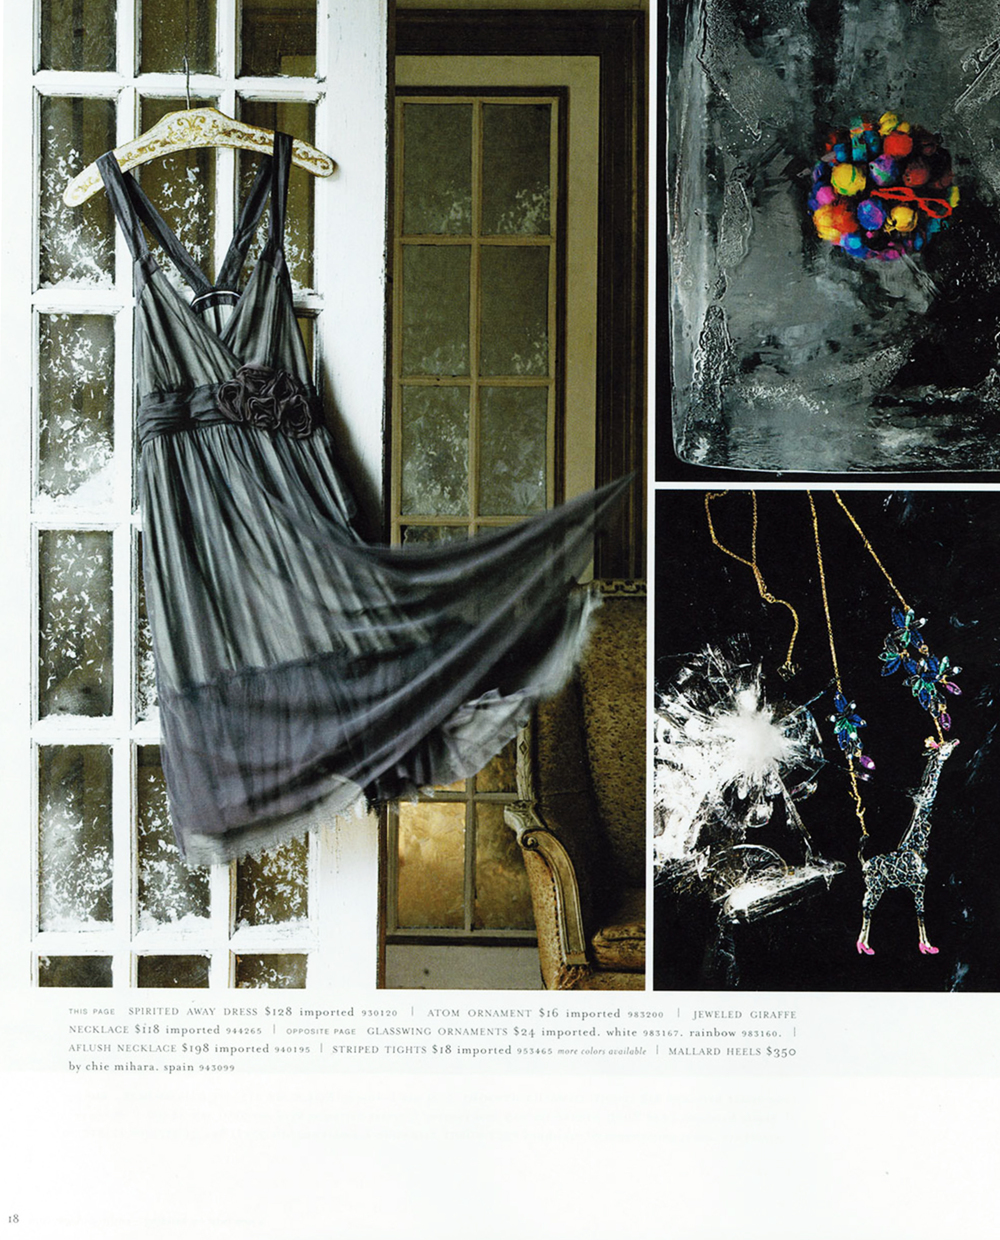 anthropologie catalogue 2009.jpg